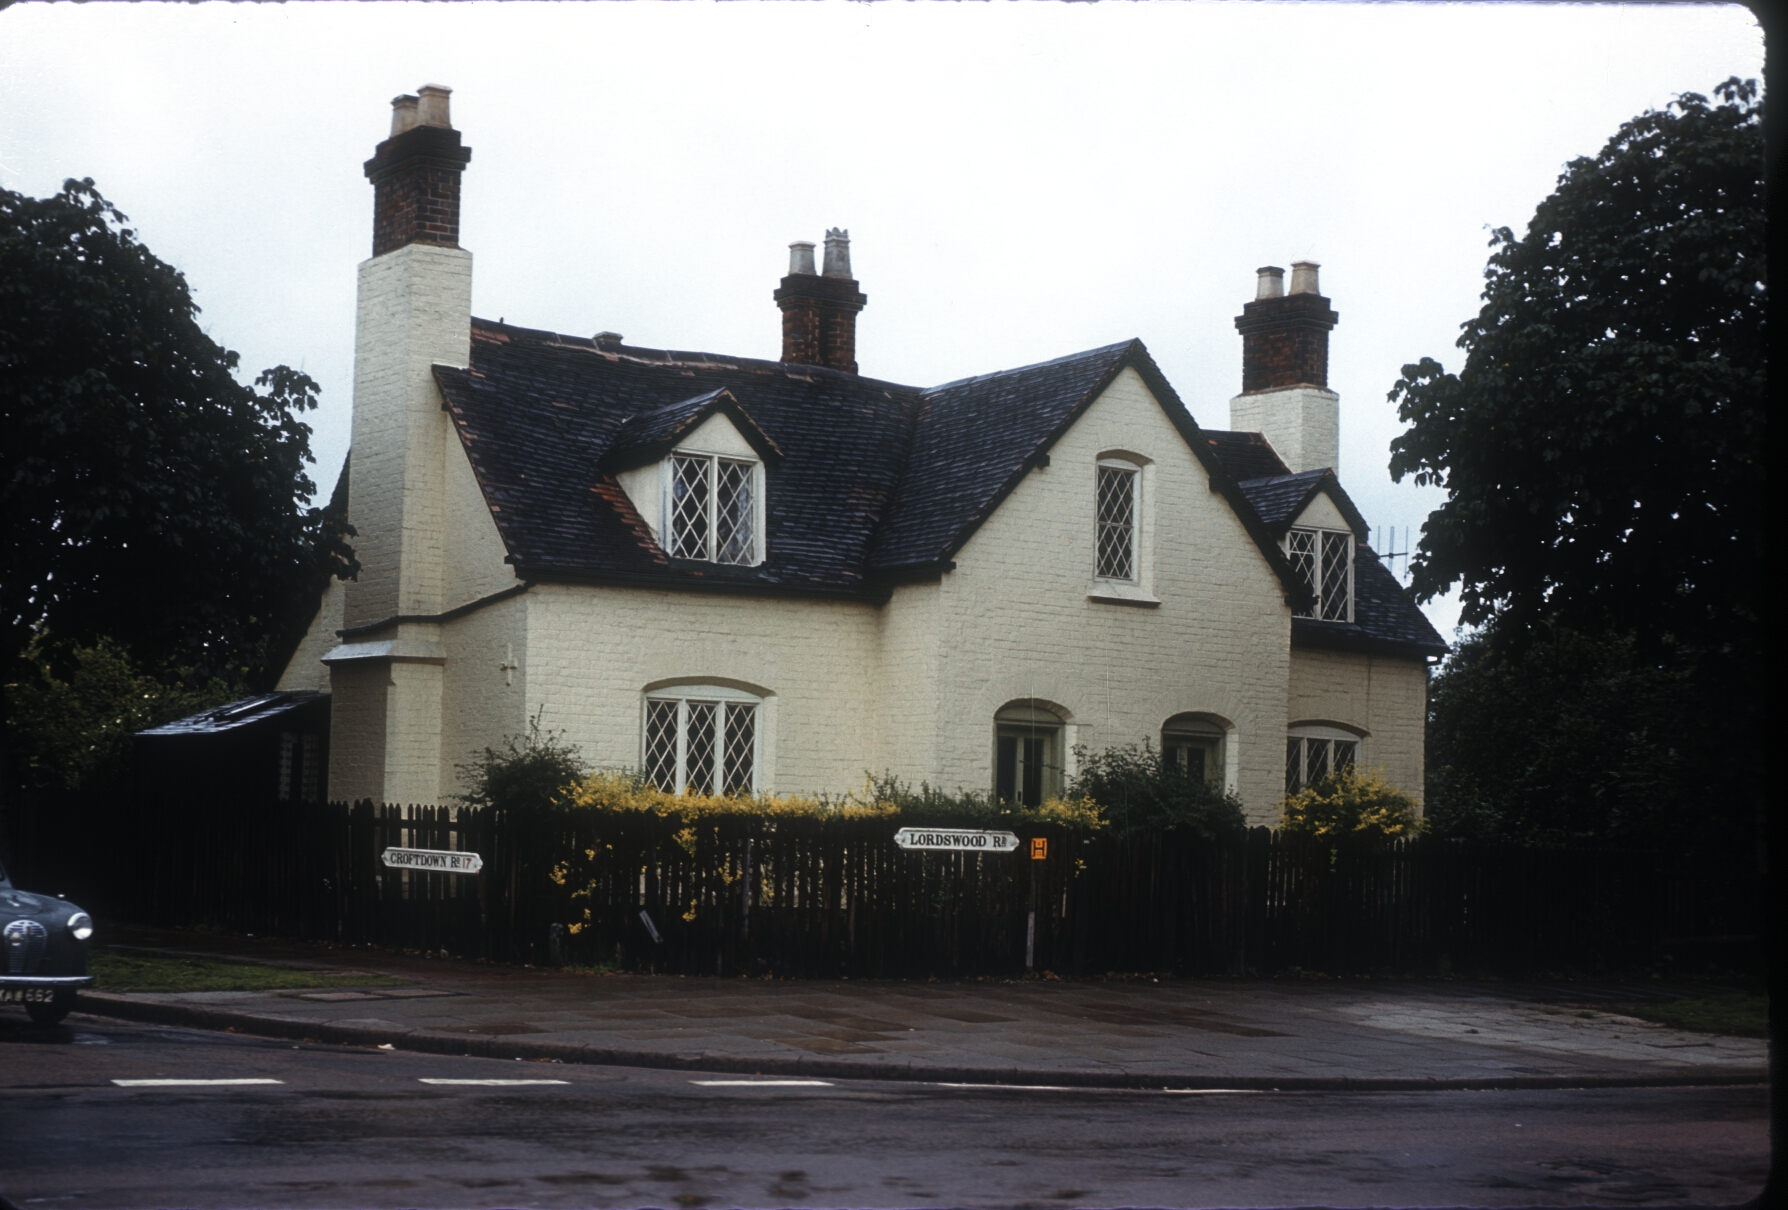 Harborne, Lordswood Rd - Old Cottages opposite the Old House at Home - Demolished 1962. 28th July 1960